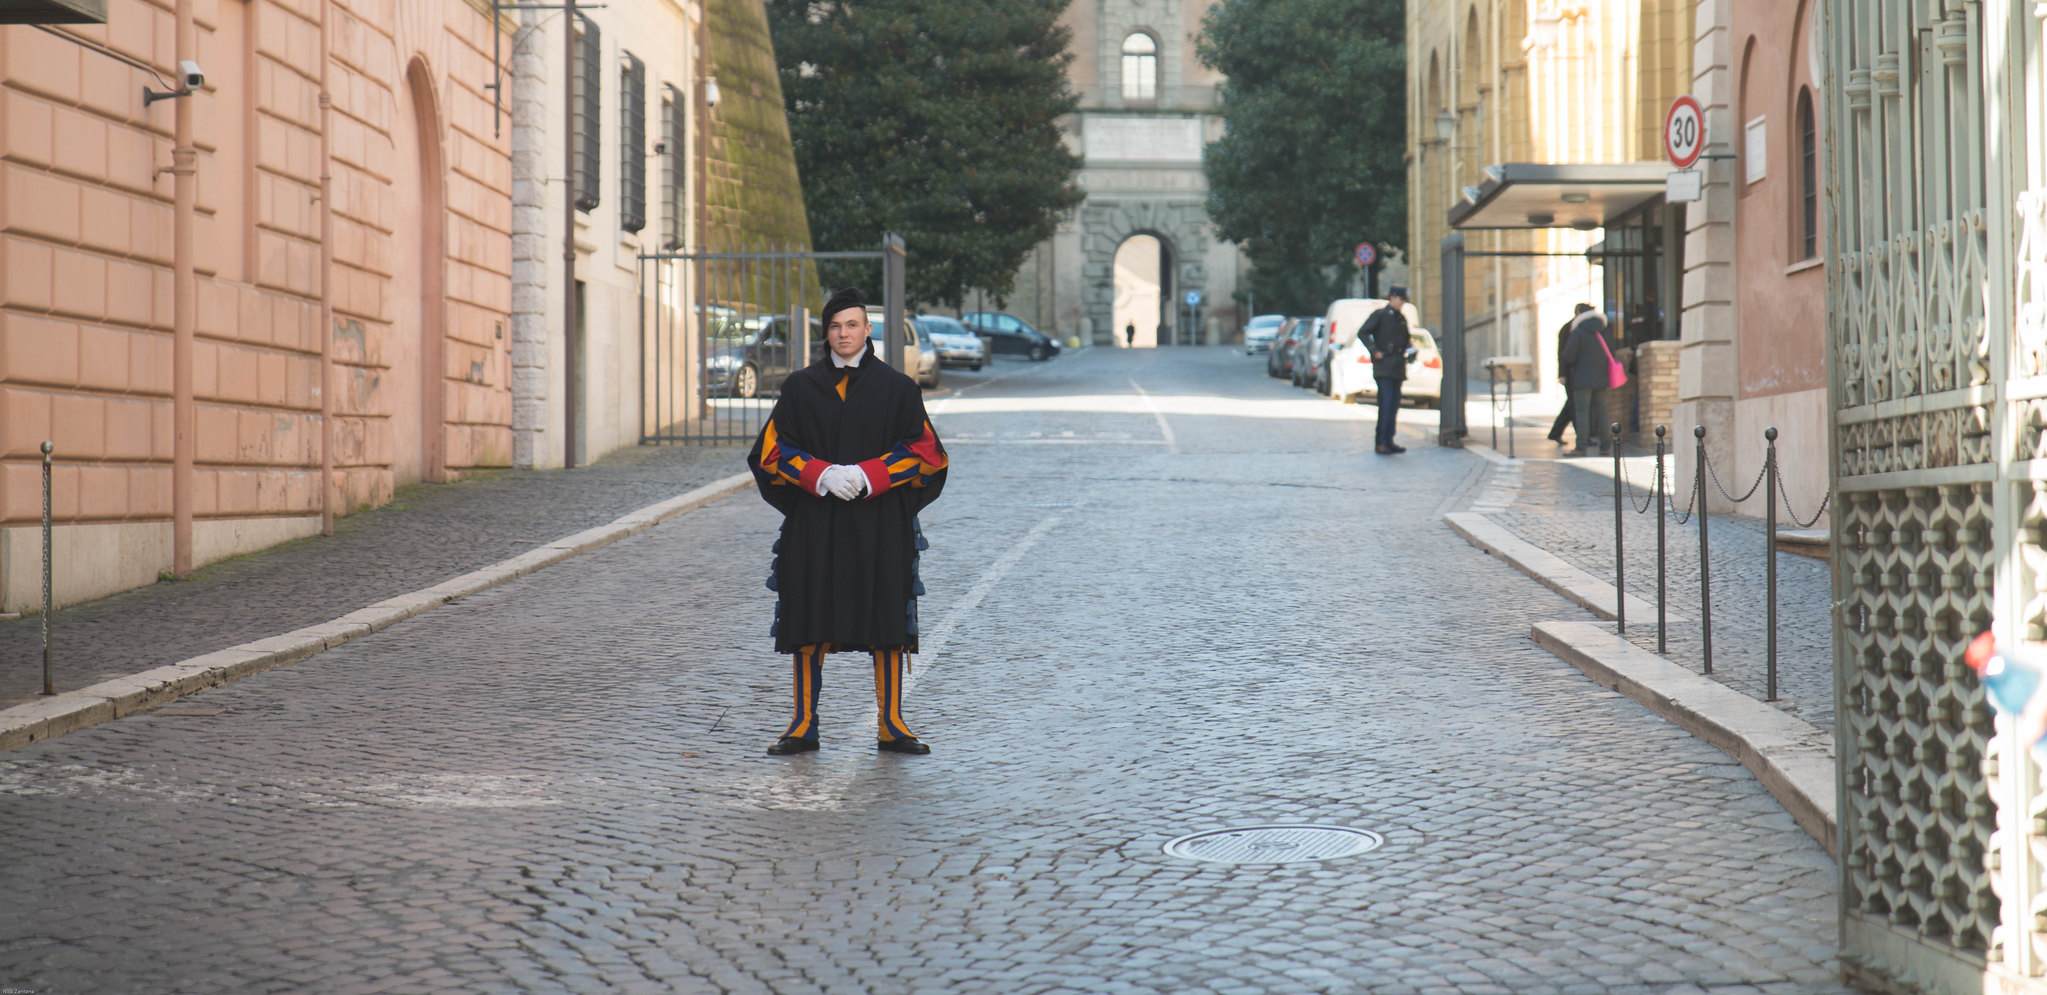 solitary swiss guard vatican city rome italy